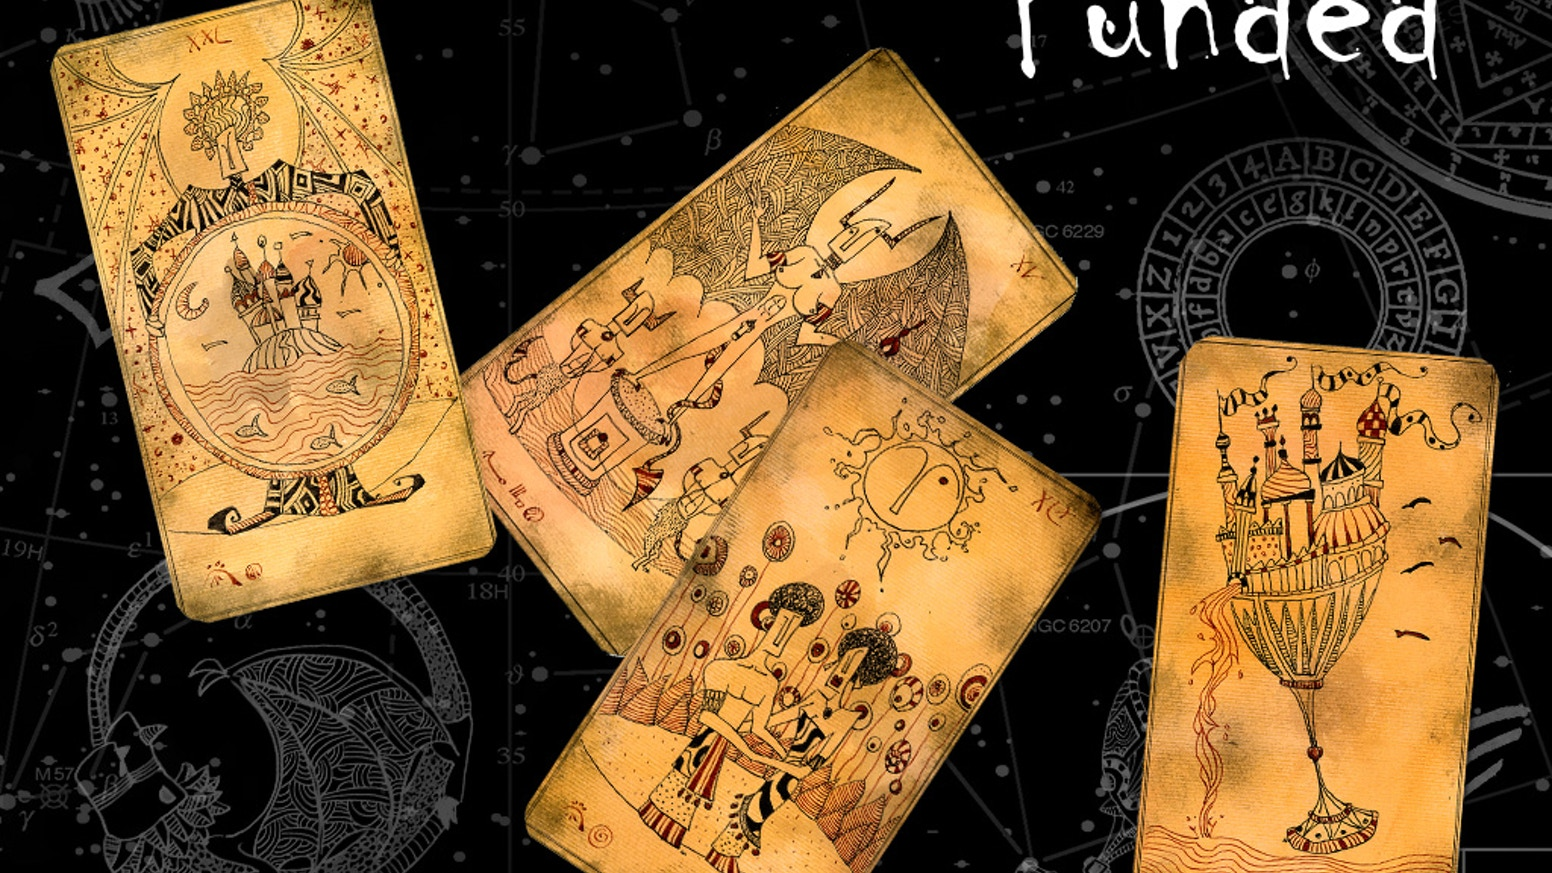 The Book of Shadows  The Lost Code of the Tarot by The Whale's Belly